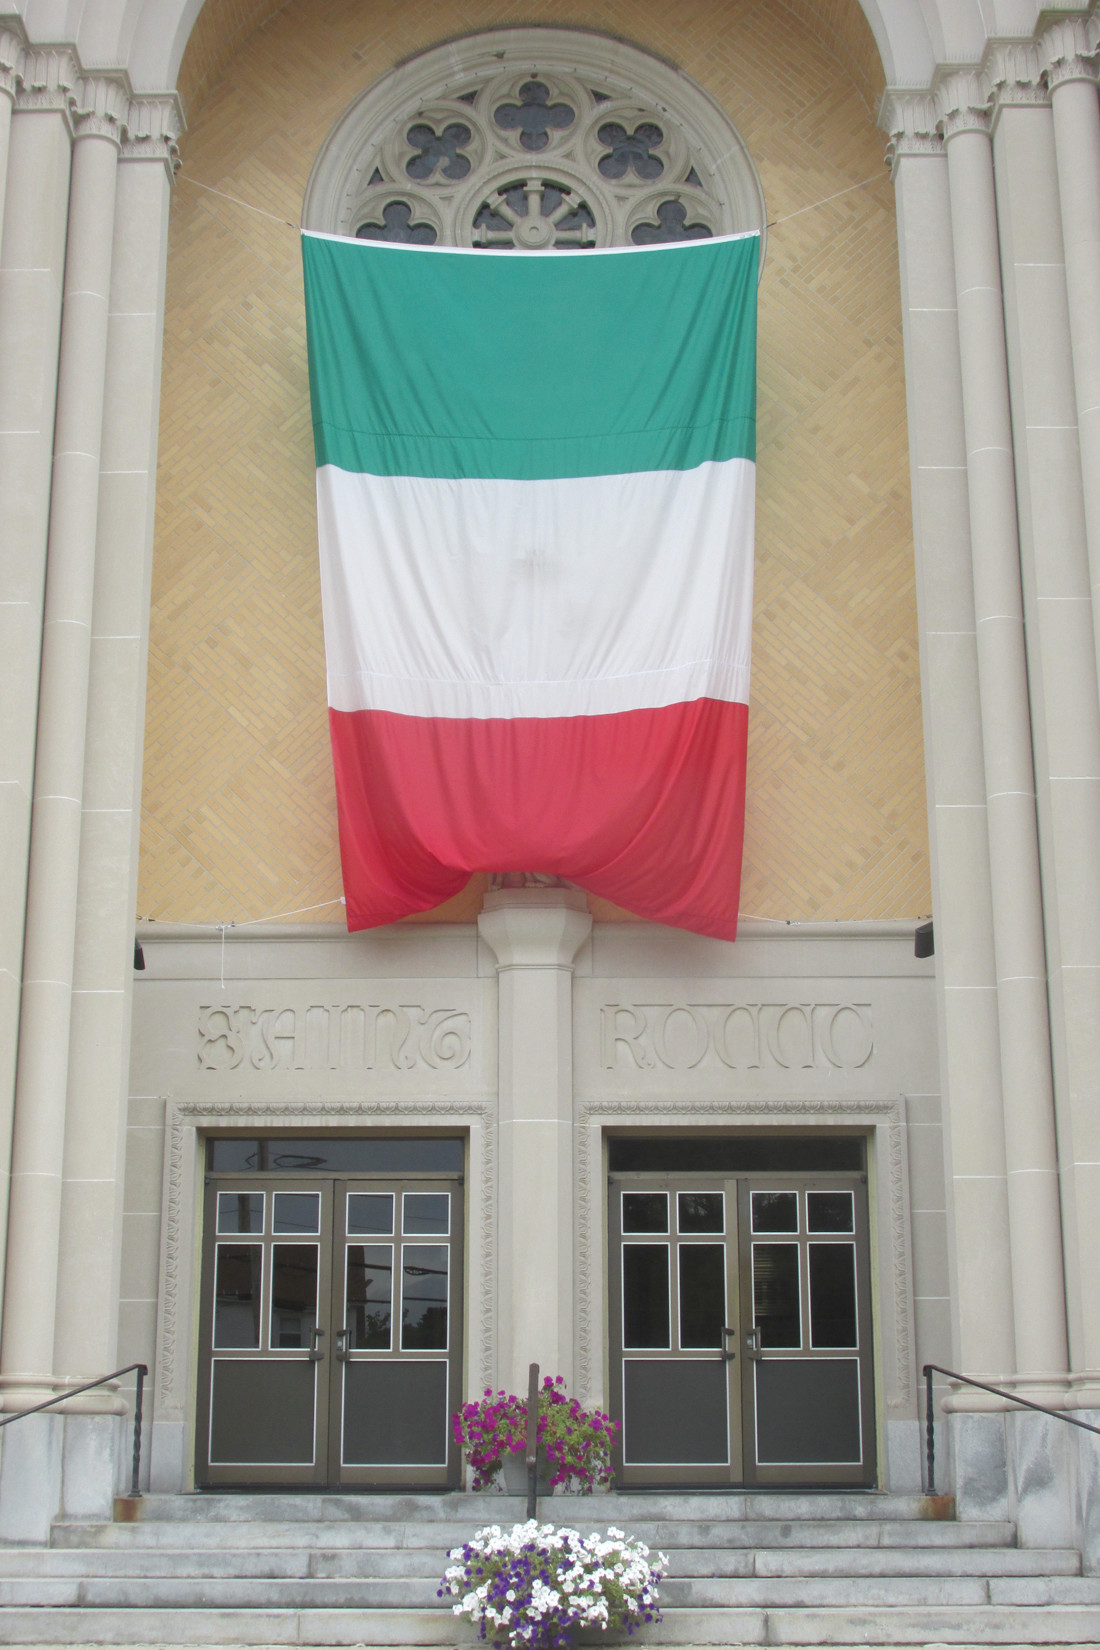 FANTASTIC FLAG: This is the huge Italian flag that's draped over the entrance to Saint Rocco Church at 925 Atwood Ave. and is the signature sign for the parish's annual feast and festival.